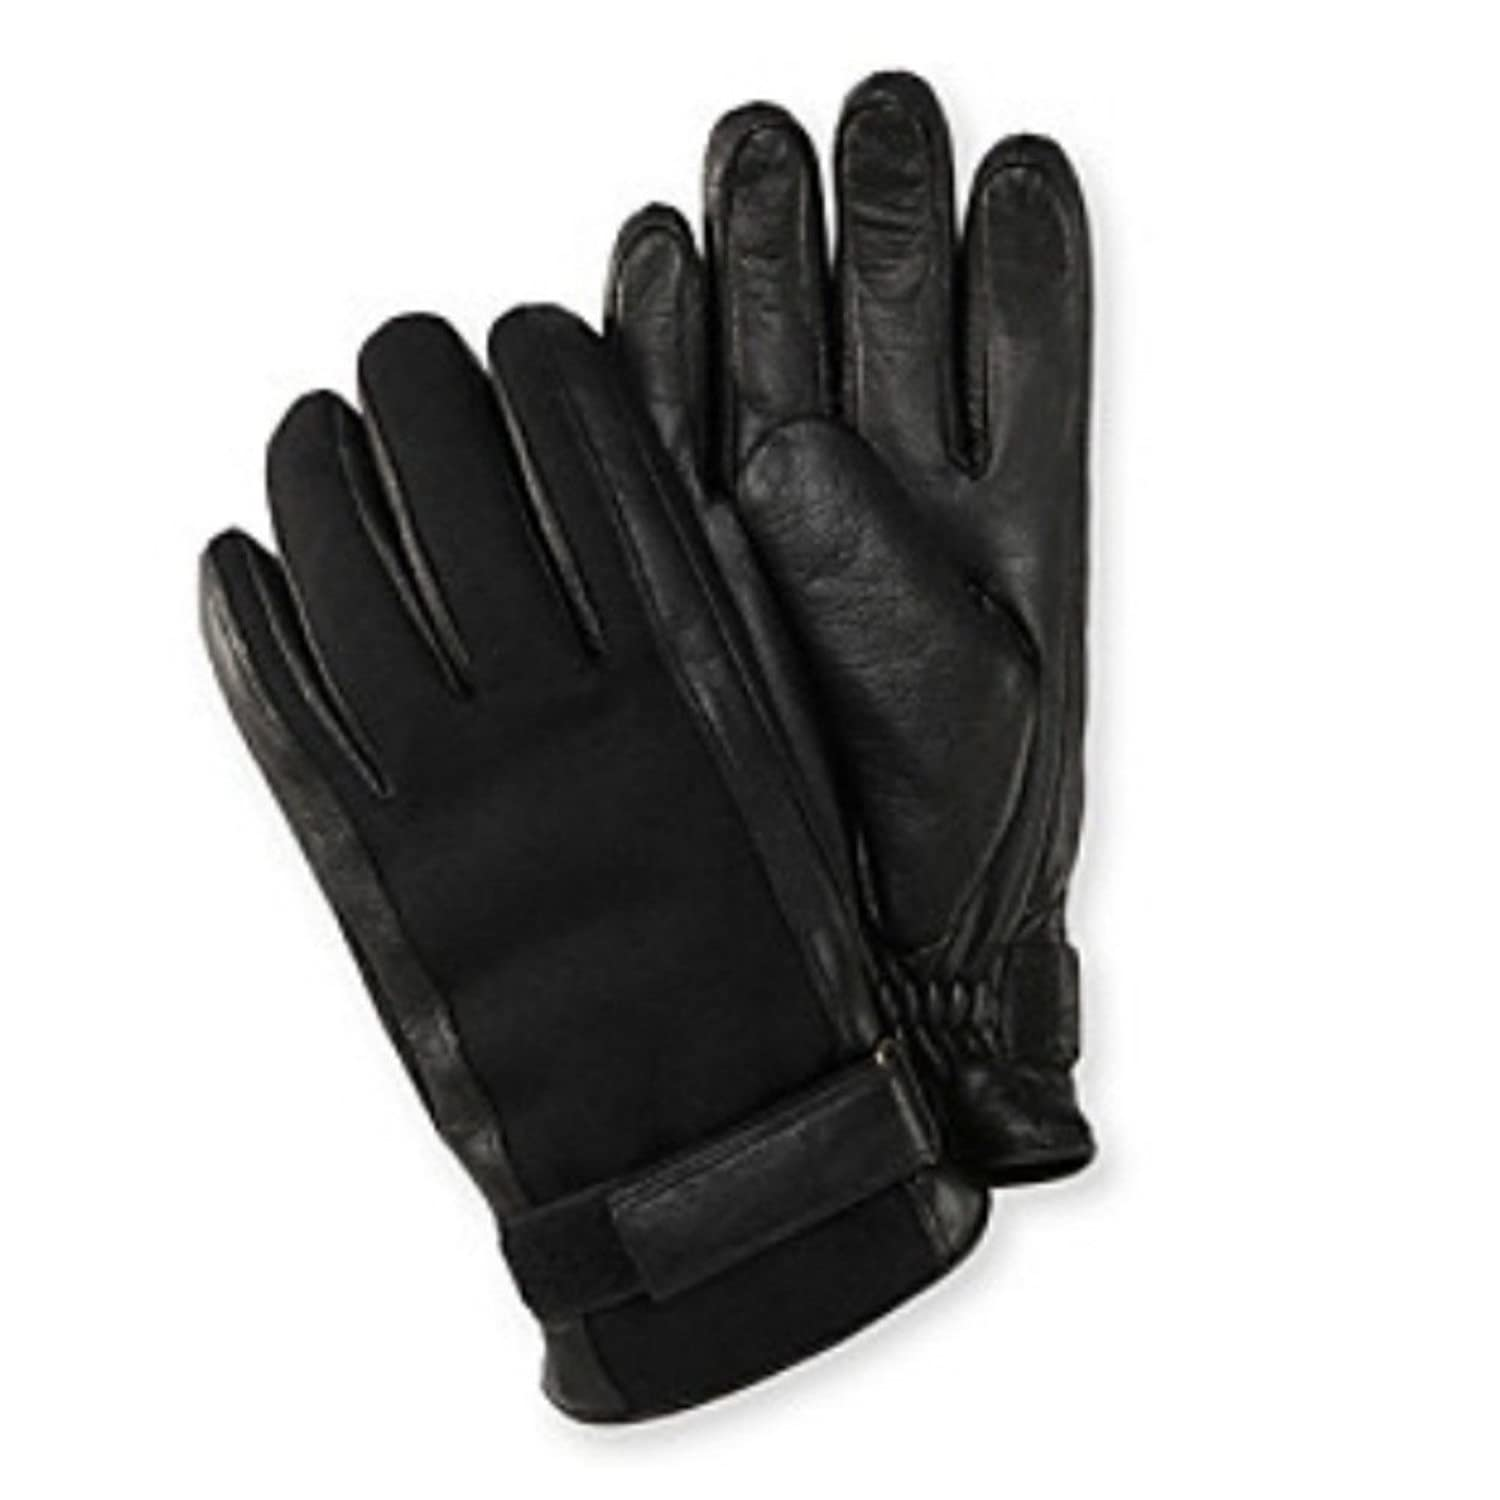 Mens gloves isotoner - Isotoner Mens Belted Black Leather Wool Gloves Thinsulate Lined At Amazon Men S Clothing Store Cold Weather Gloves